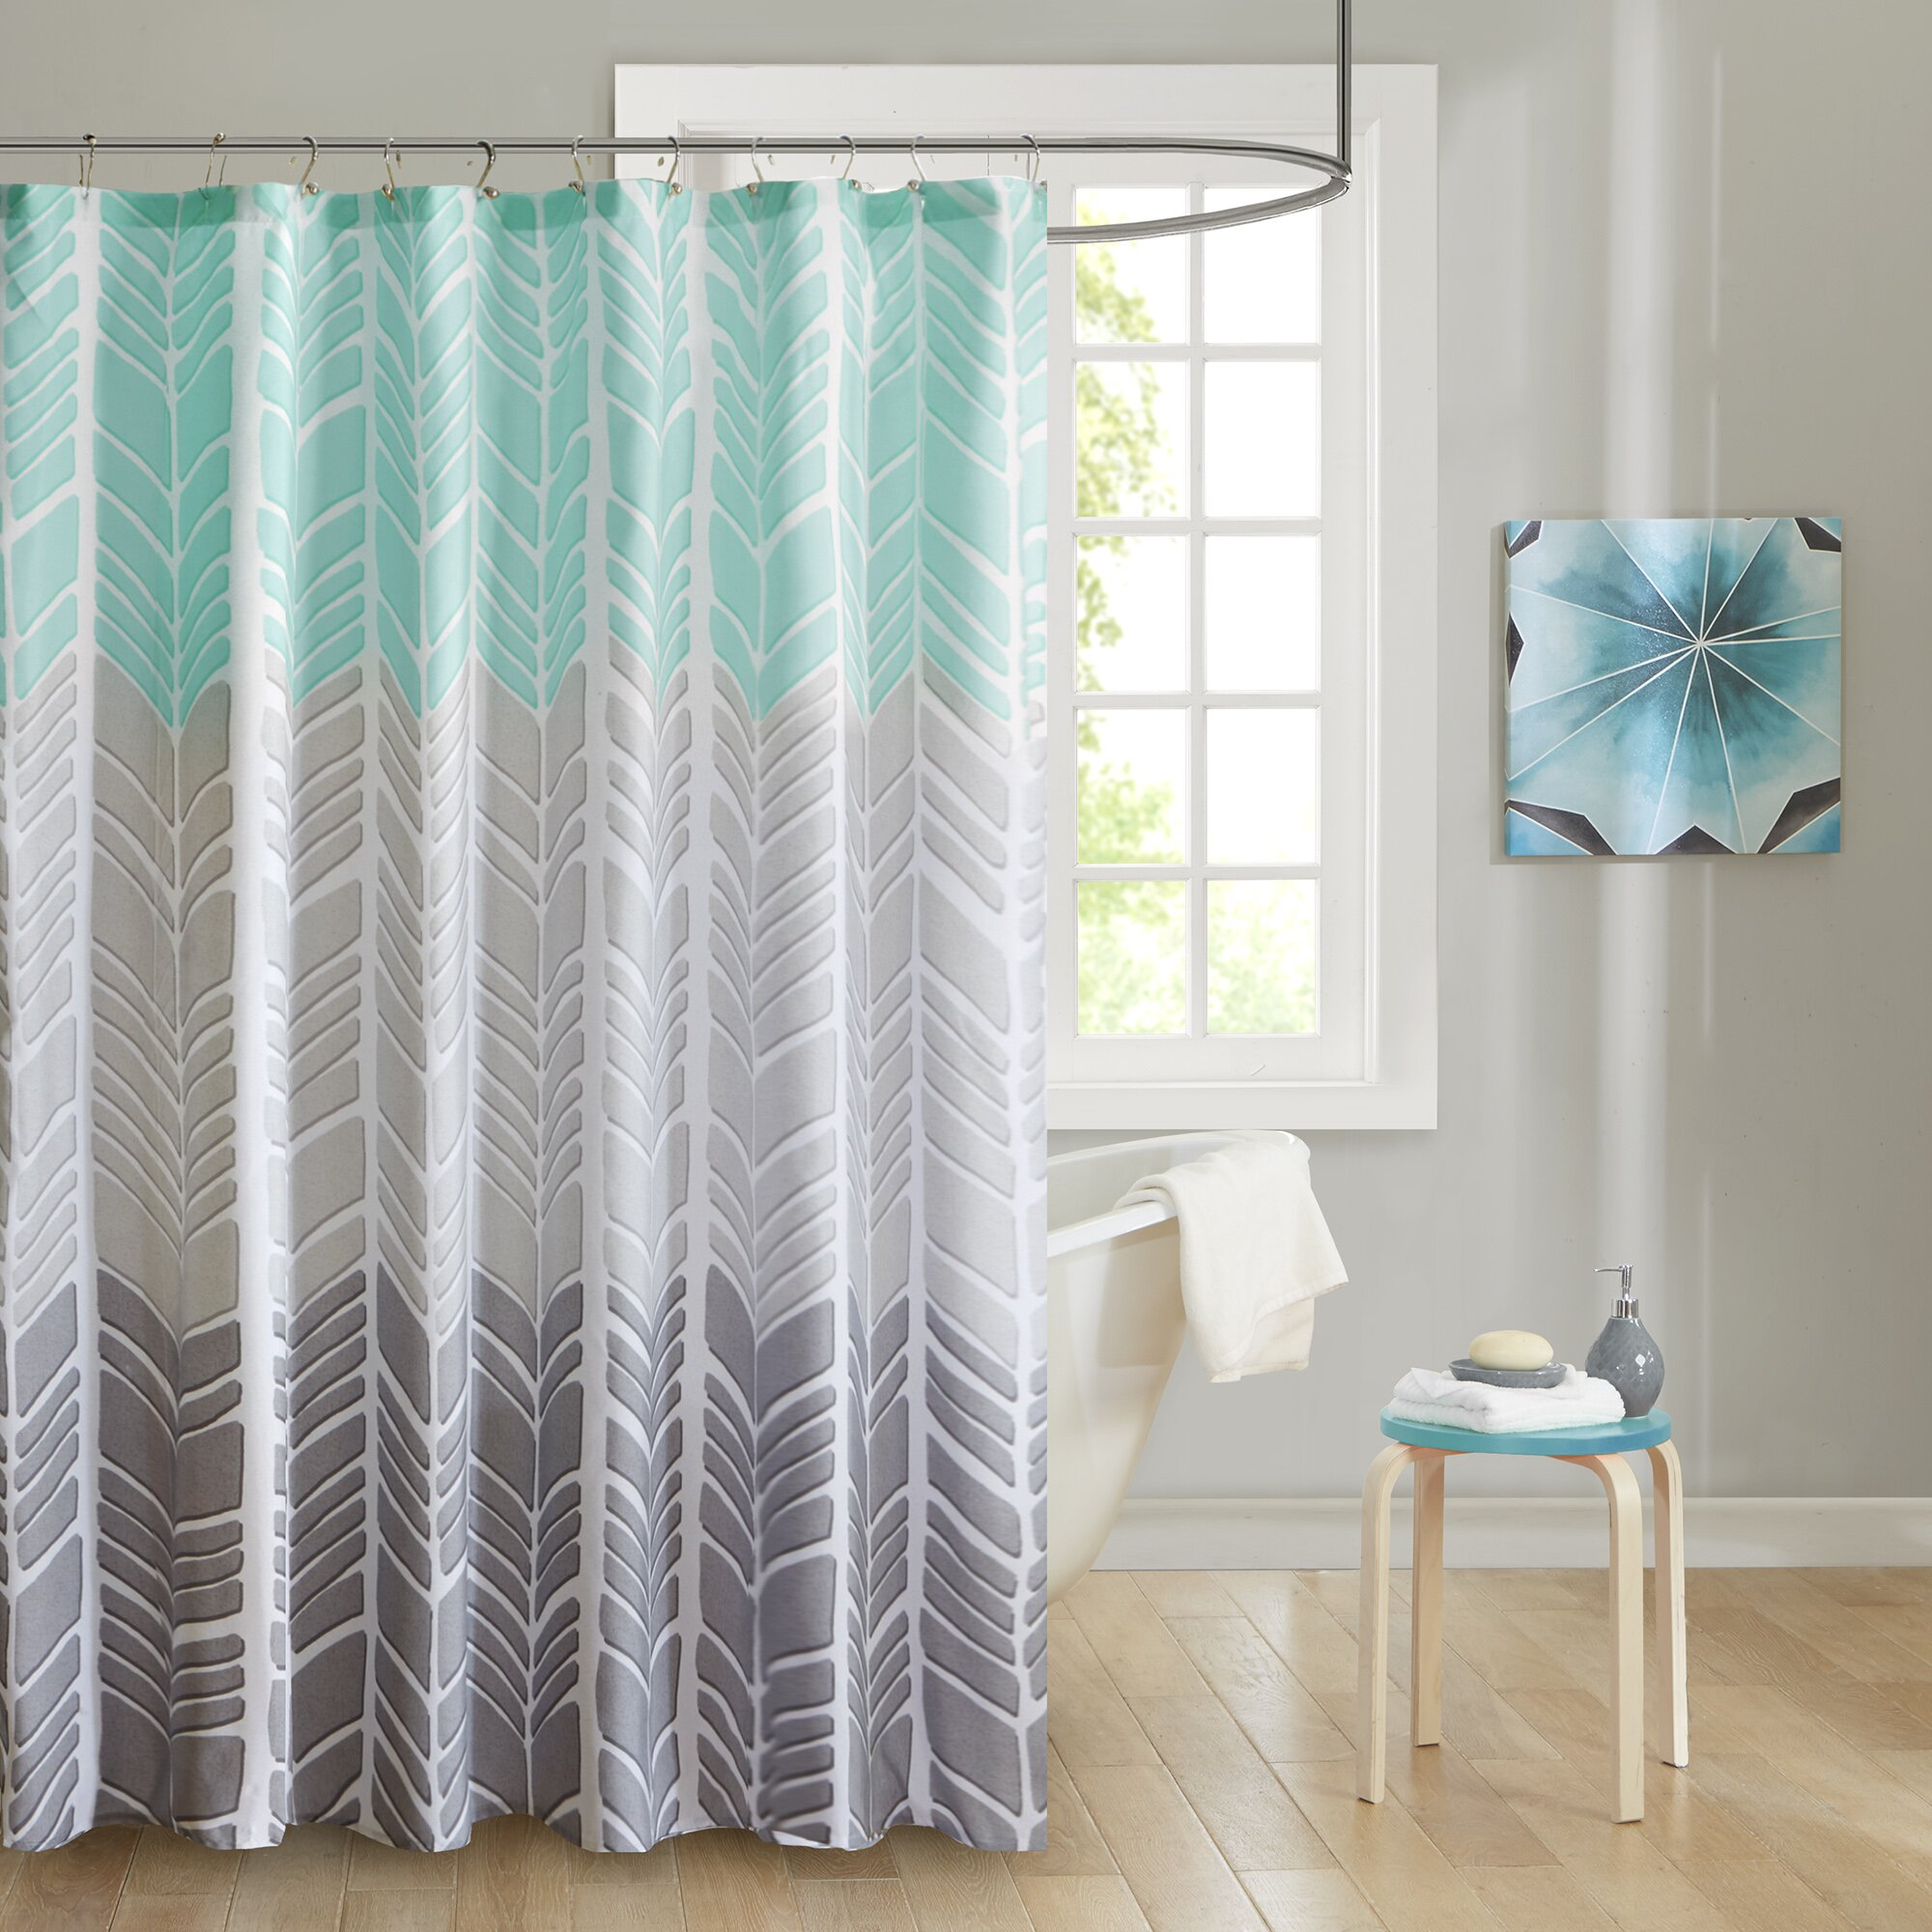 Bamboo shower curtain - Cherie Printed Shower Curtain